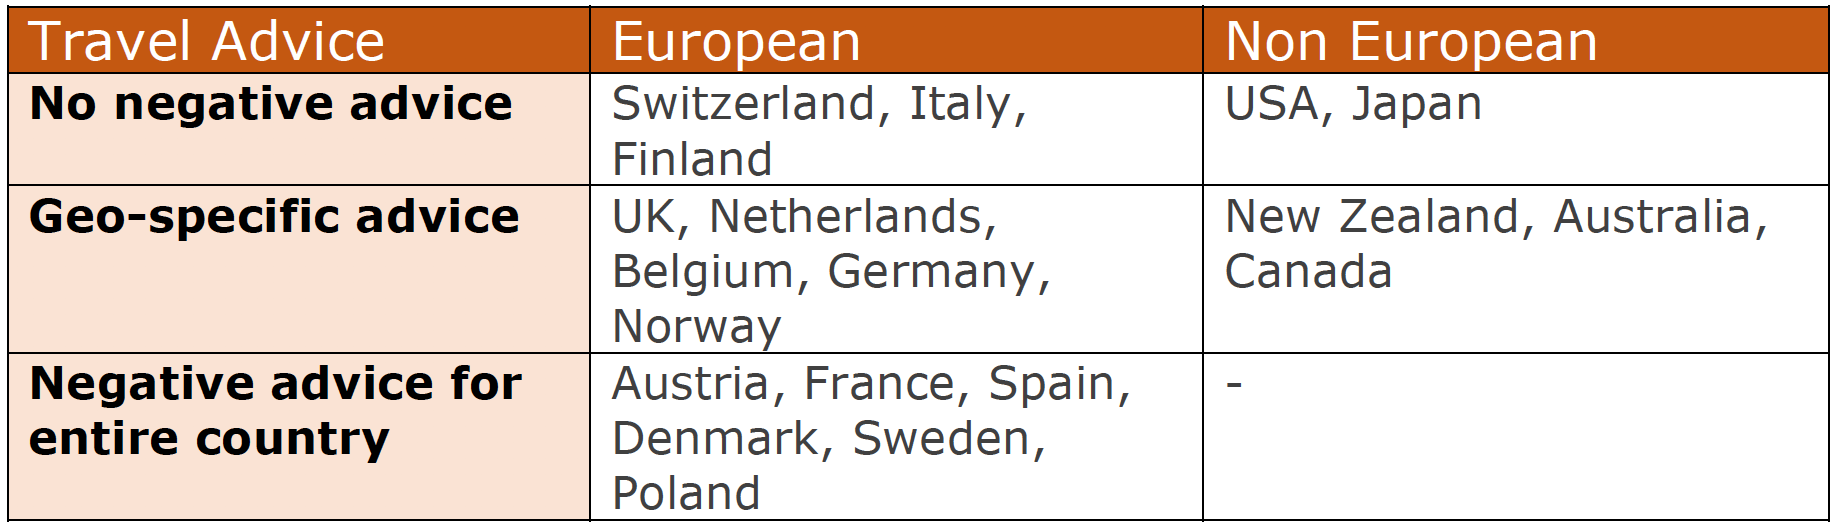 Travel advisories for Western countries